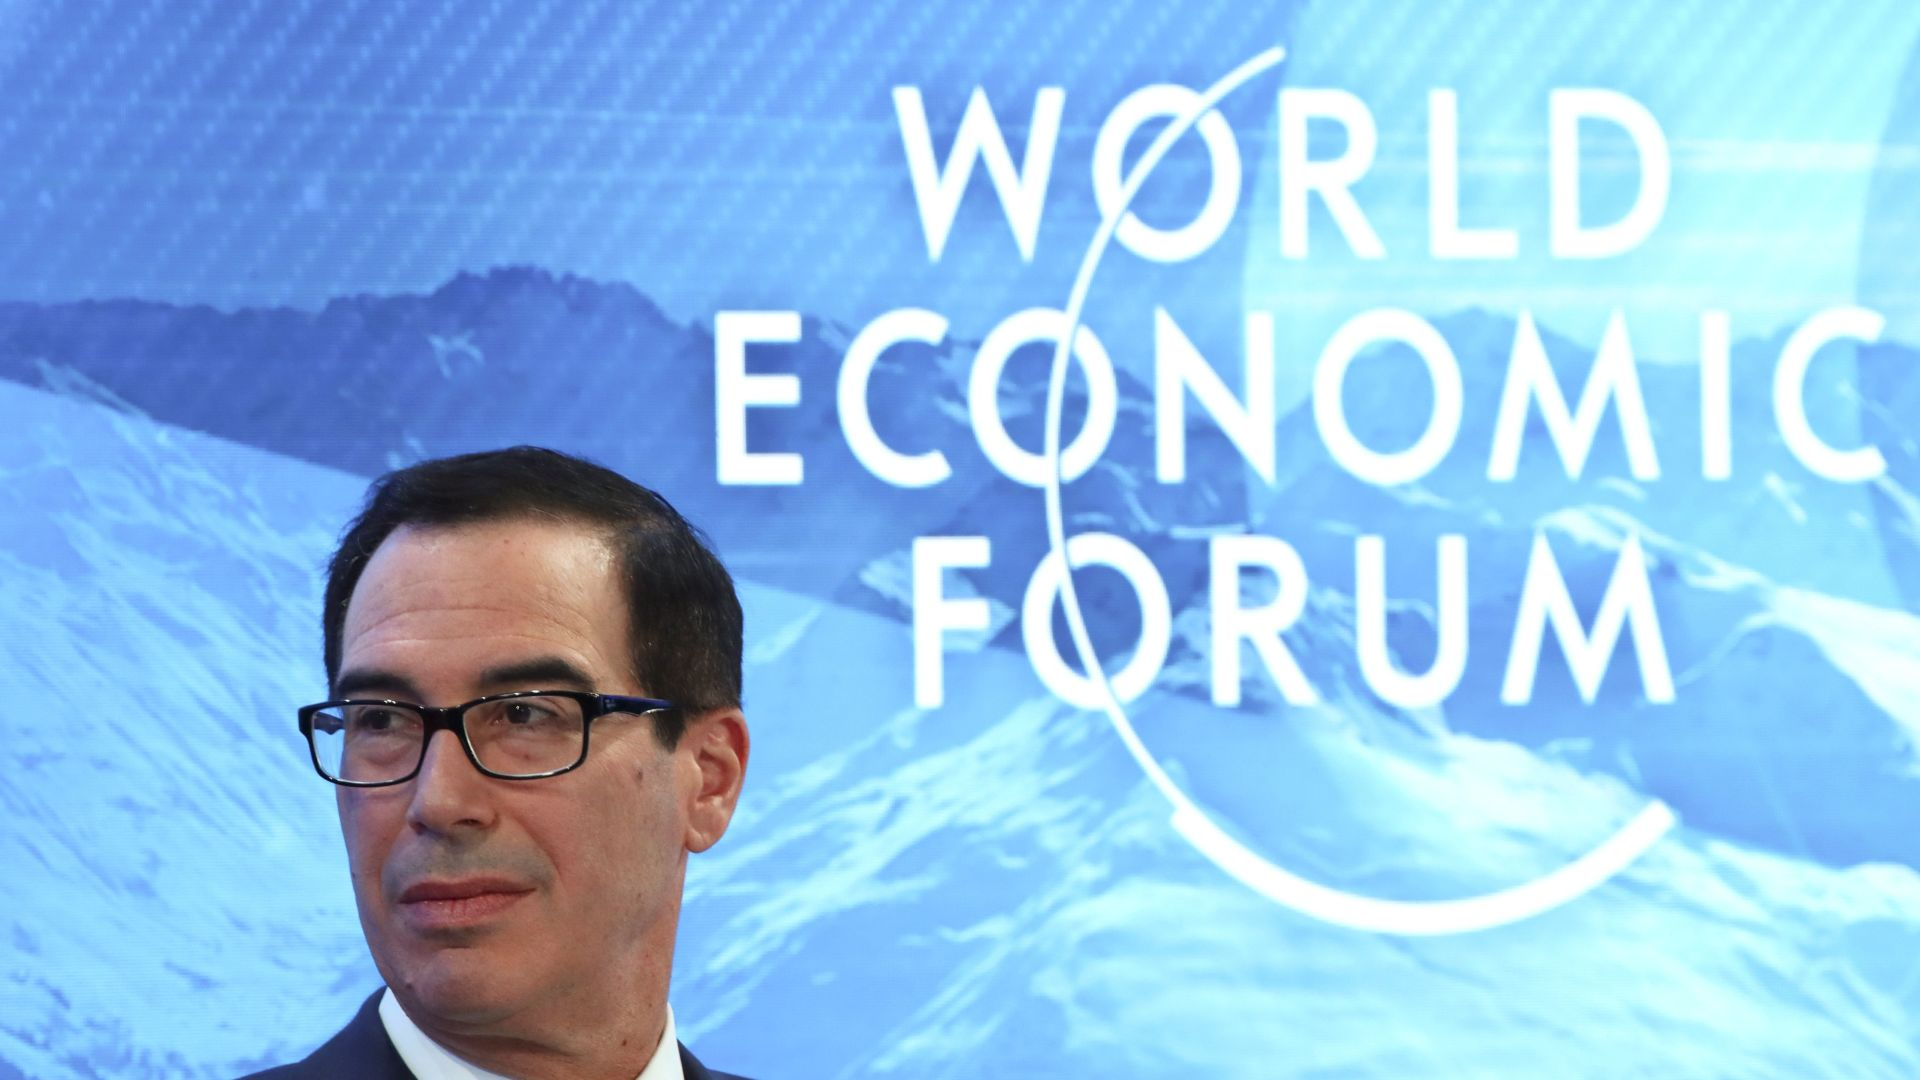 Greta Thunberg Rips Steve Mnuchin For Saying She Needs An Econ Degree Before He'll Listen